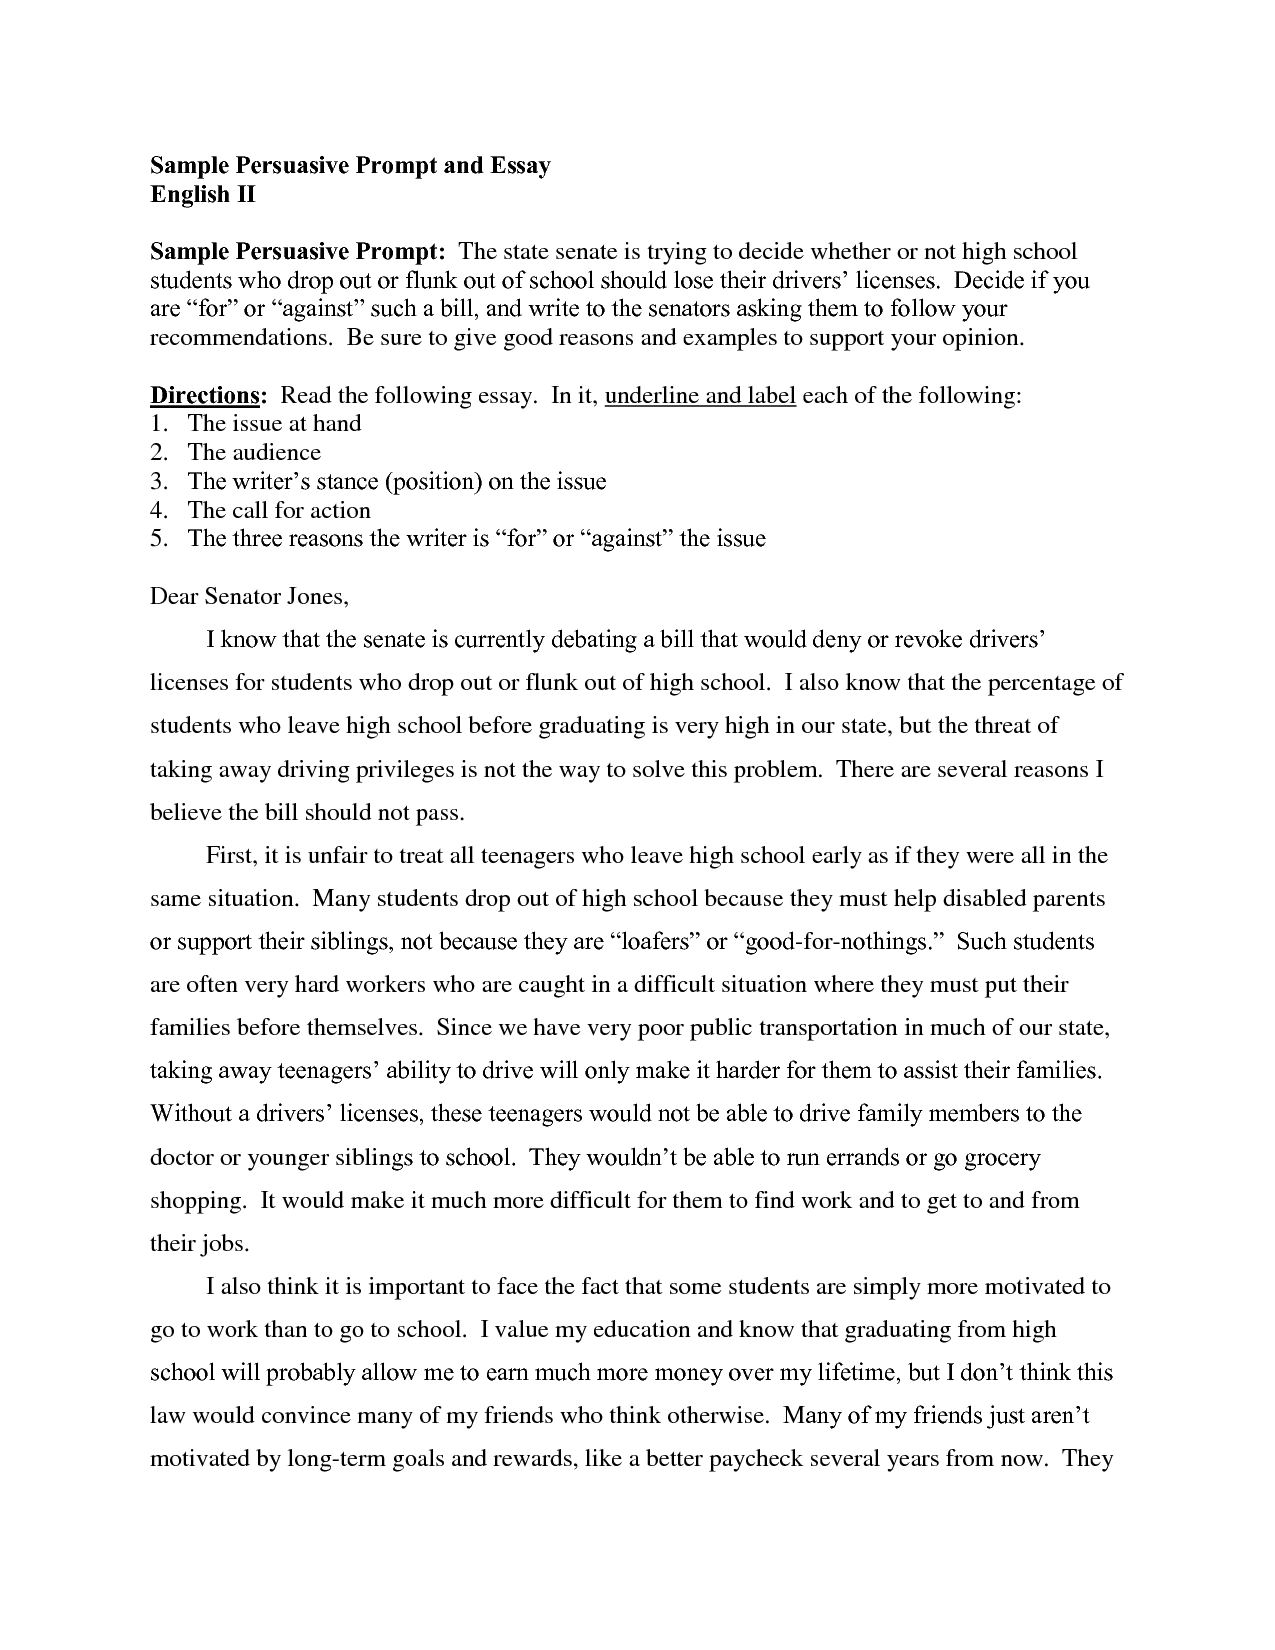 011 Research Paper Easy Topics For Middle School Students Persuasive Essay High Sample Ideas Highschool Good Prompt Funny Fun List Of Seniors Writing Impressive Full